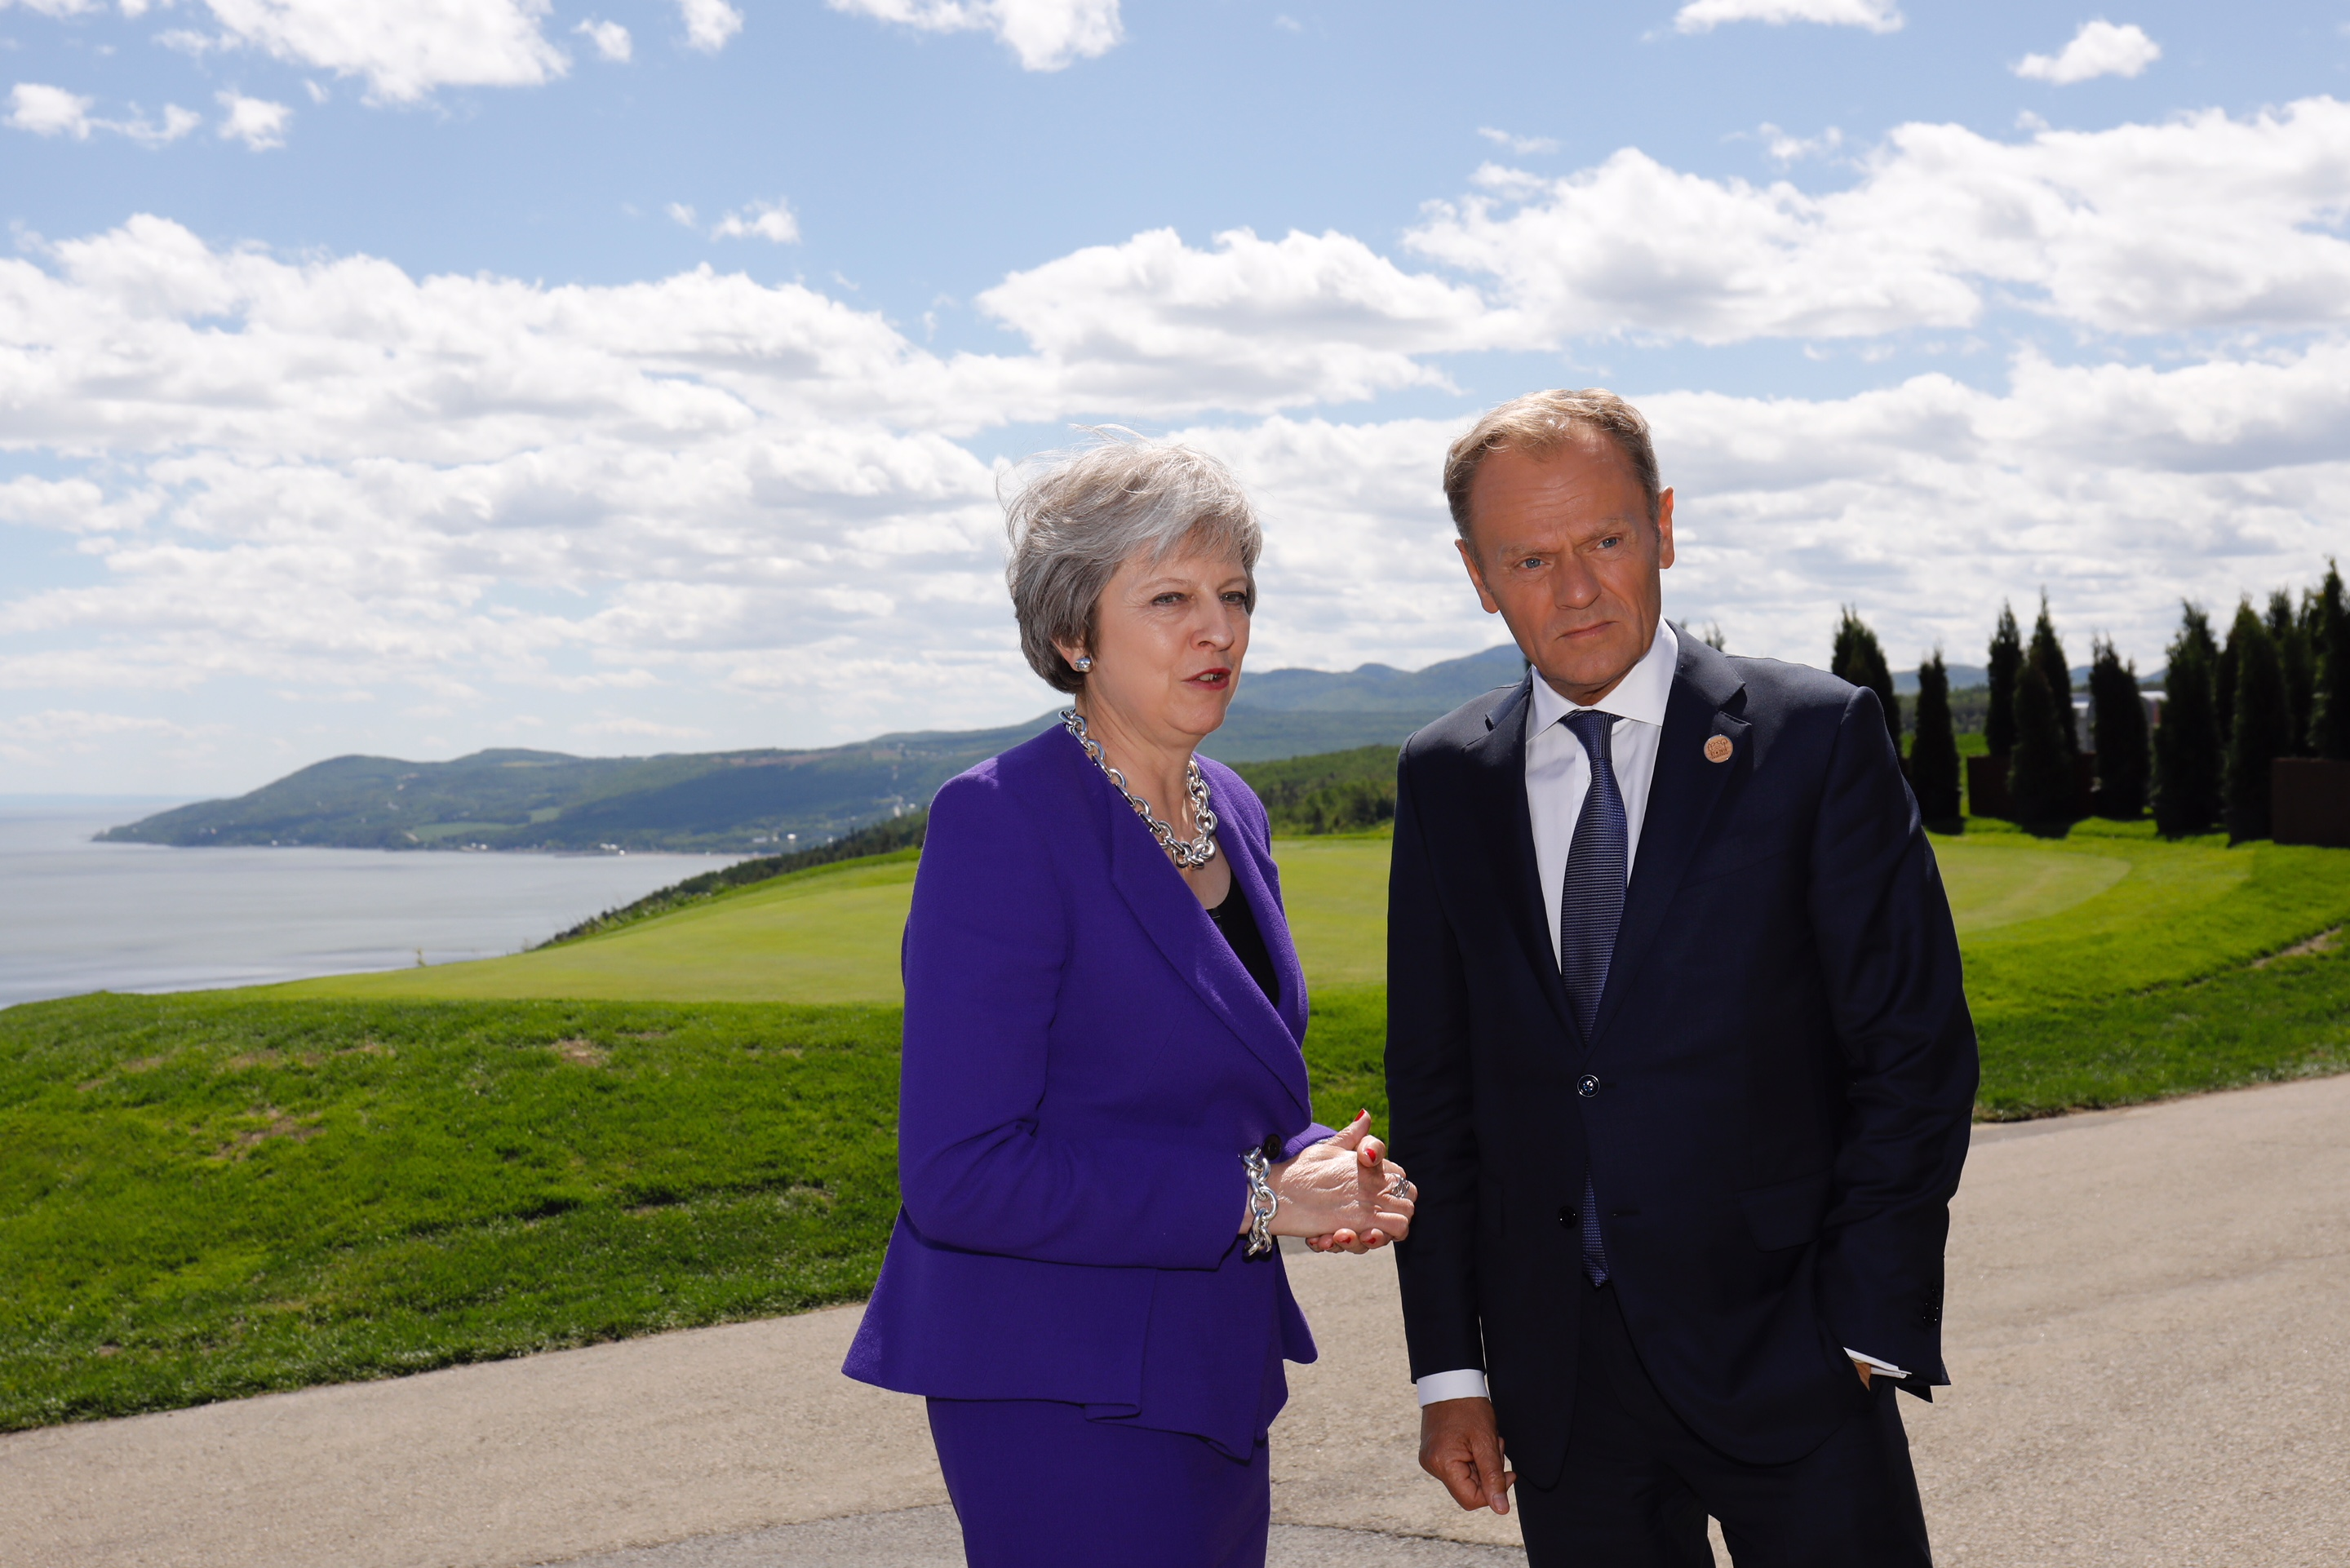 From left to right: Ms Theresa MAY, UK Prime Minister; Mr Donald TUSK, President of the European Council.